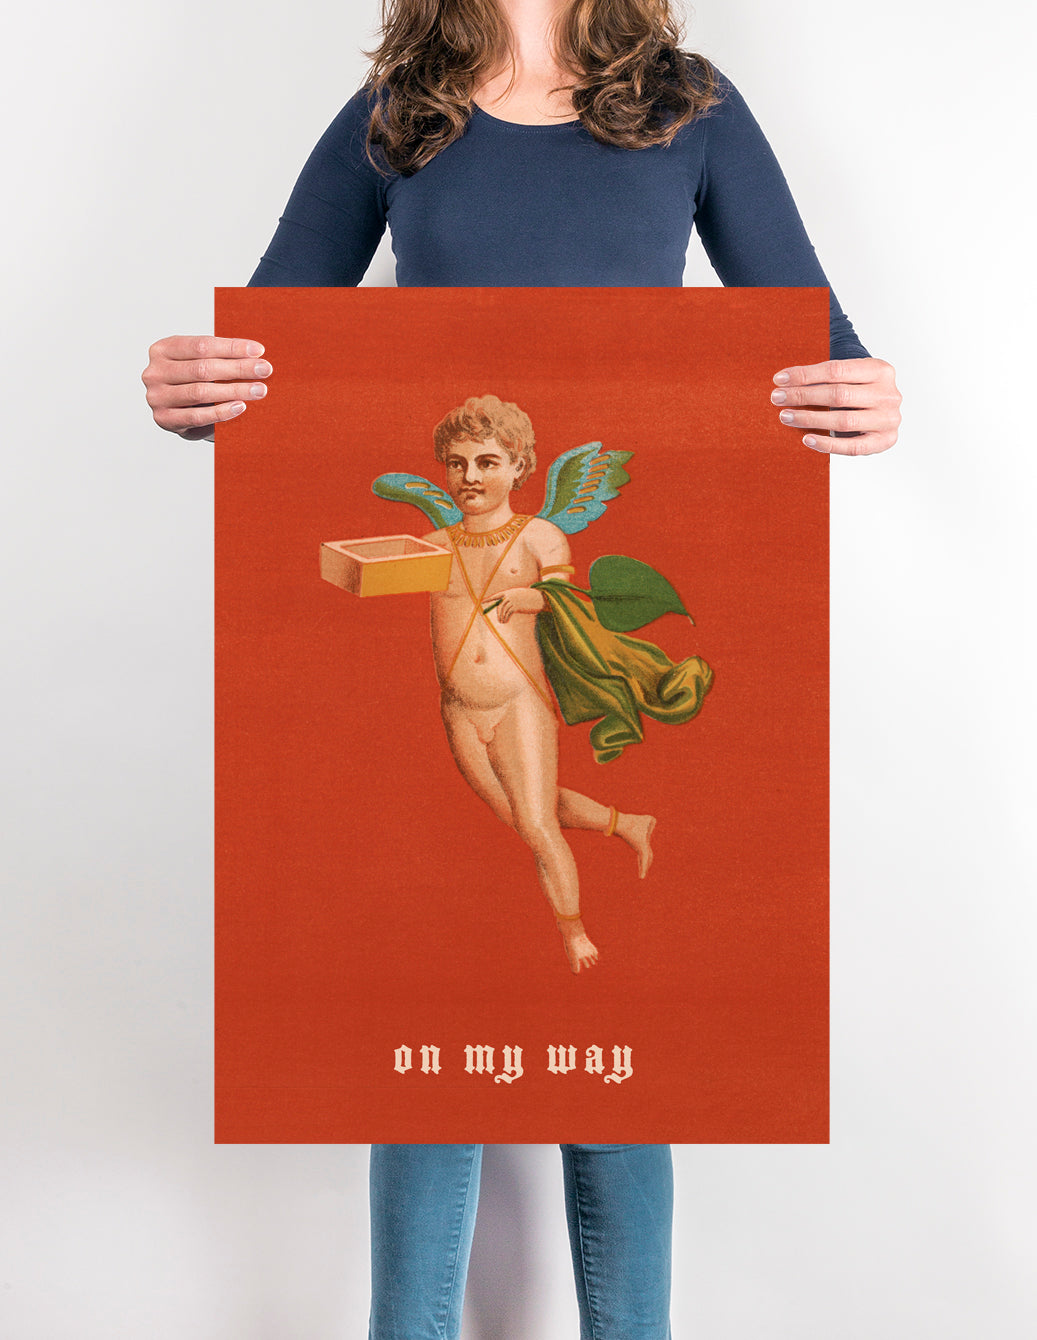 Vintage Cupid Poster - Funny love poster for any room!